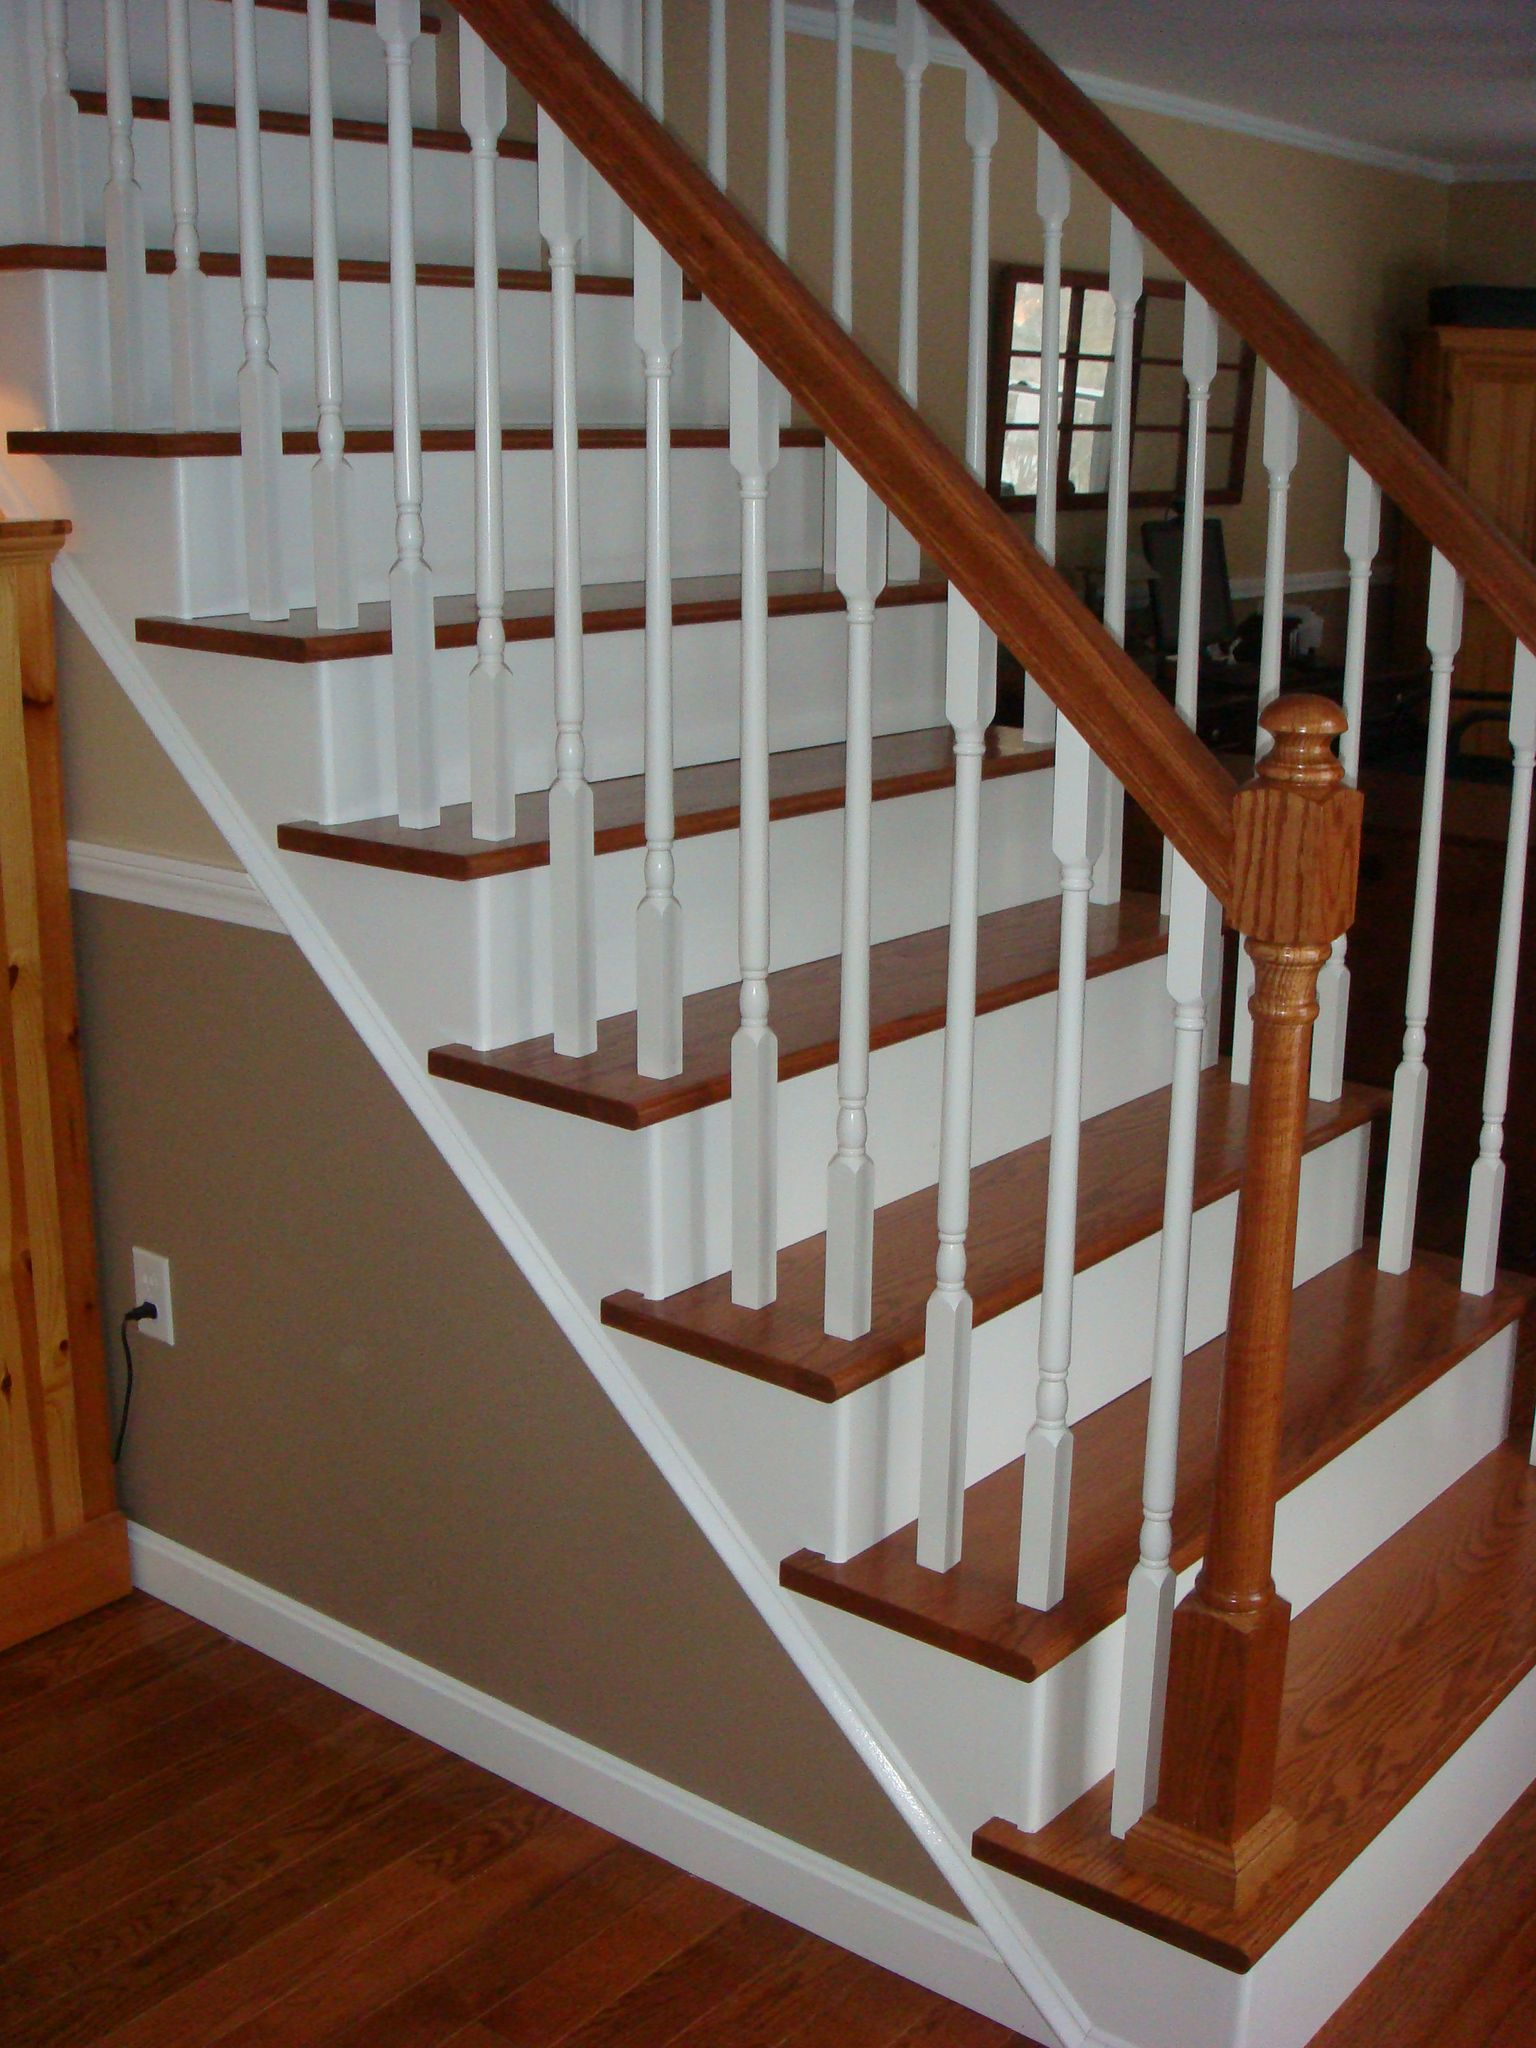 From Carpet To Wooden Stair Treads Guest Remodel Redoing Stairs Wooden Stairs And Stair Treads